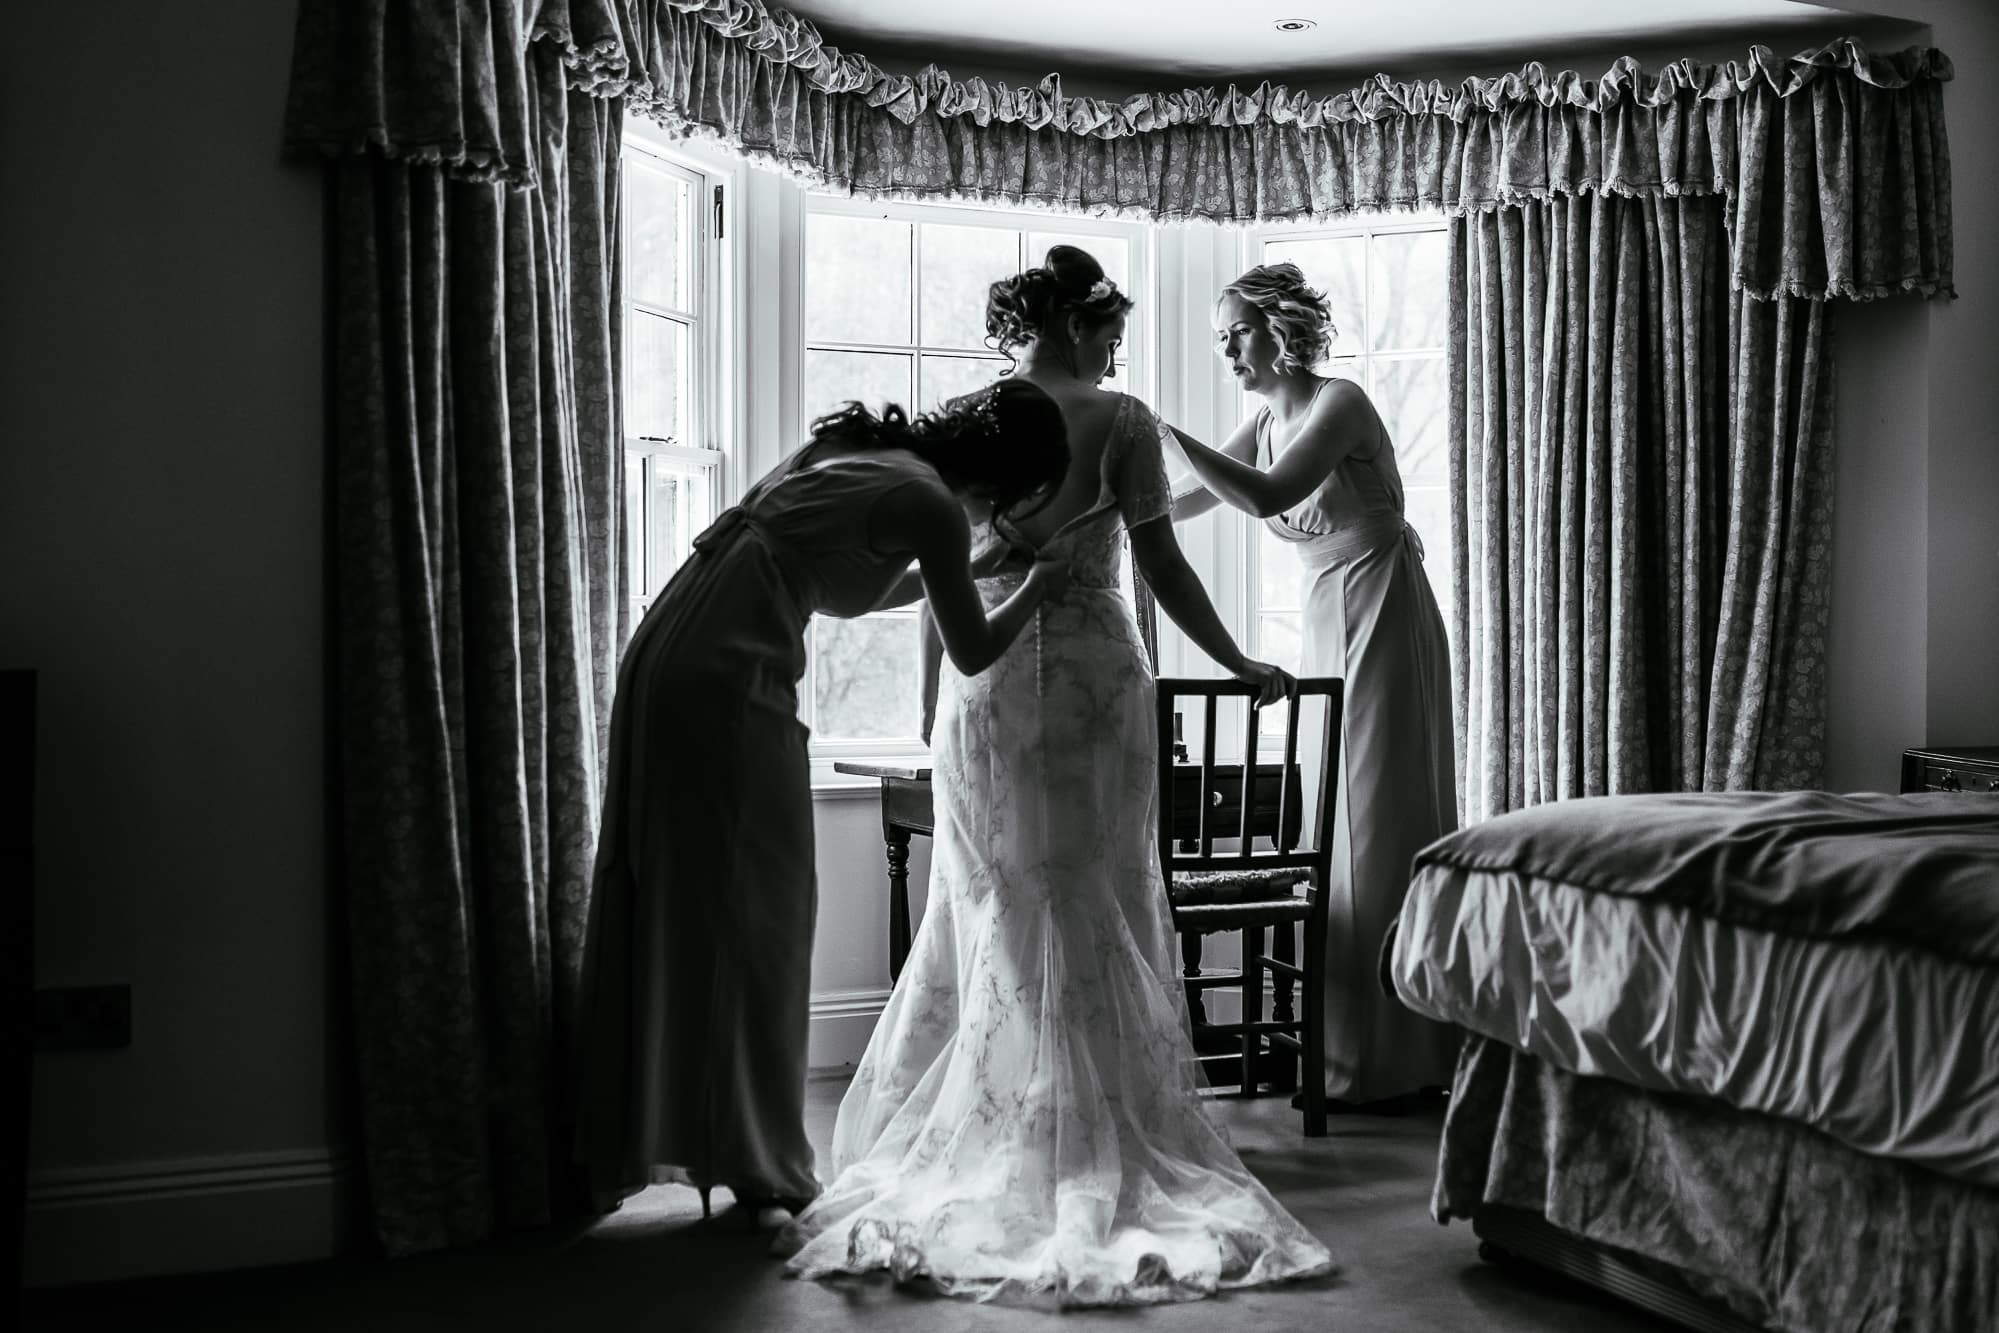 The bride getting into her dress and being helped by her bridesmaids